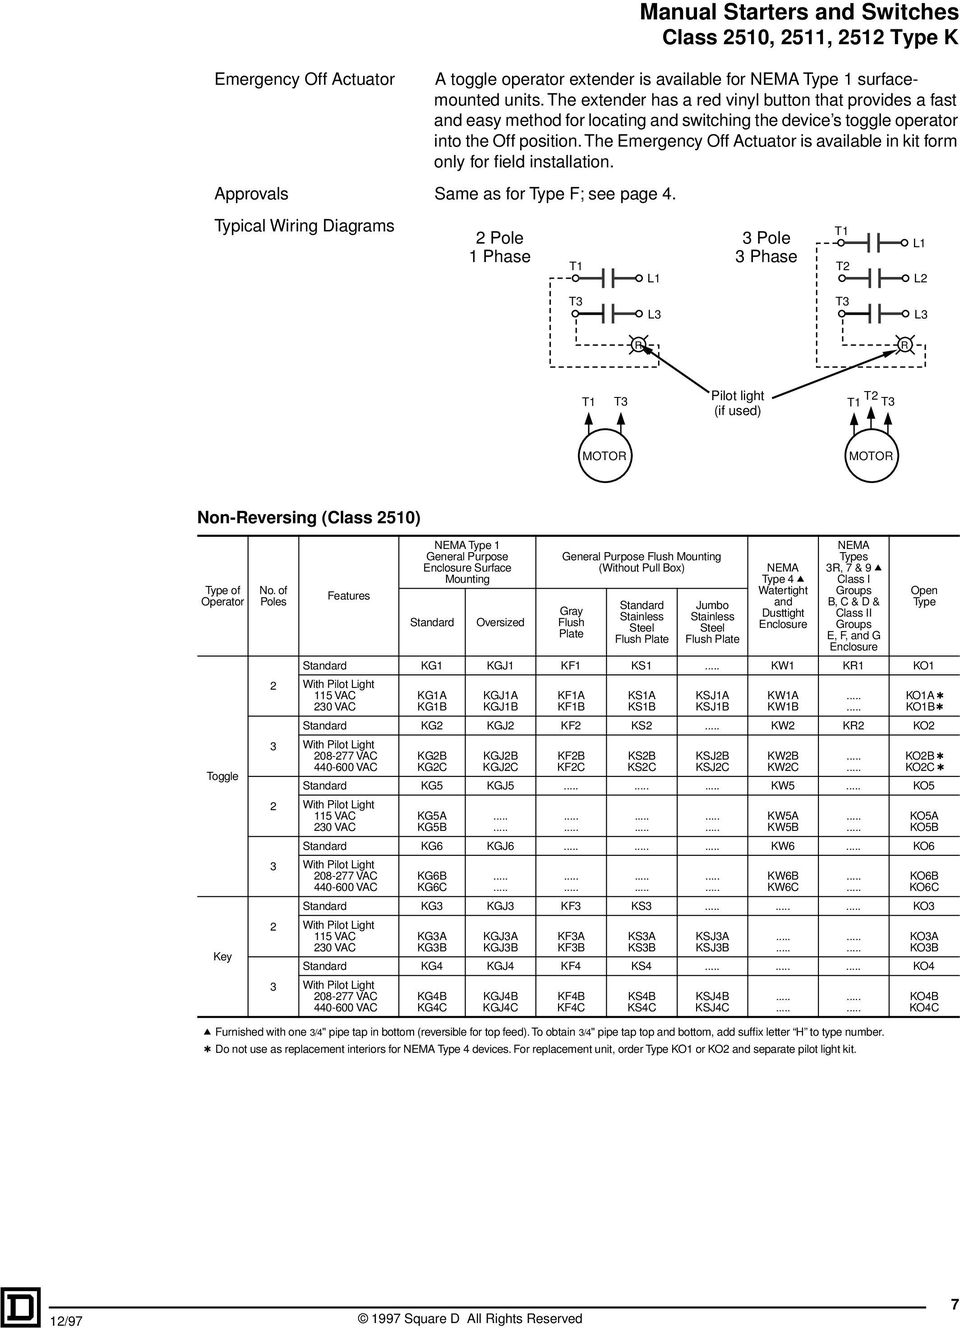 Manual Starters And Switches Selection Guide Pdf 3 Phase 12 Poll Switch Wiring Diagram The Emergency Off Actuator Is Available In Kit Form Only For Field Installation Approvals Same